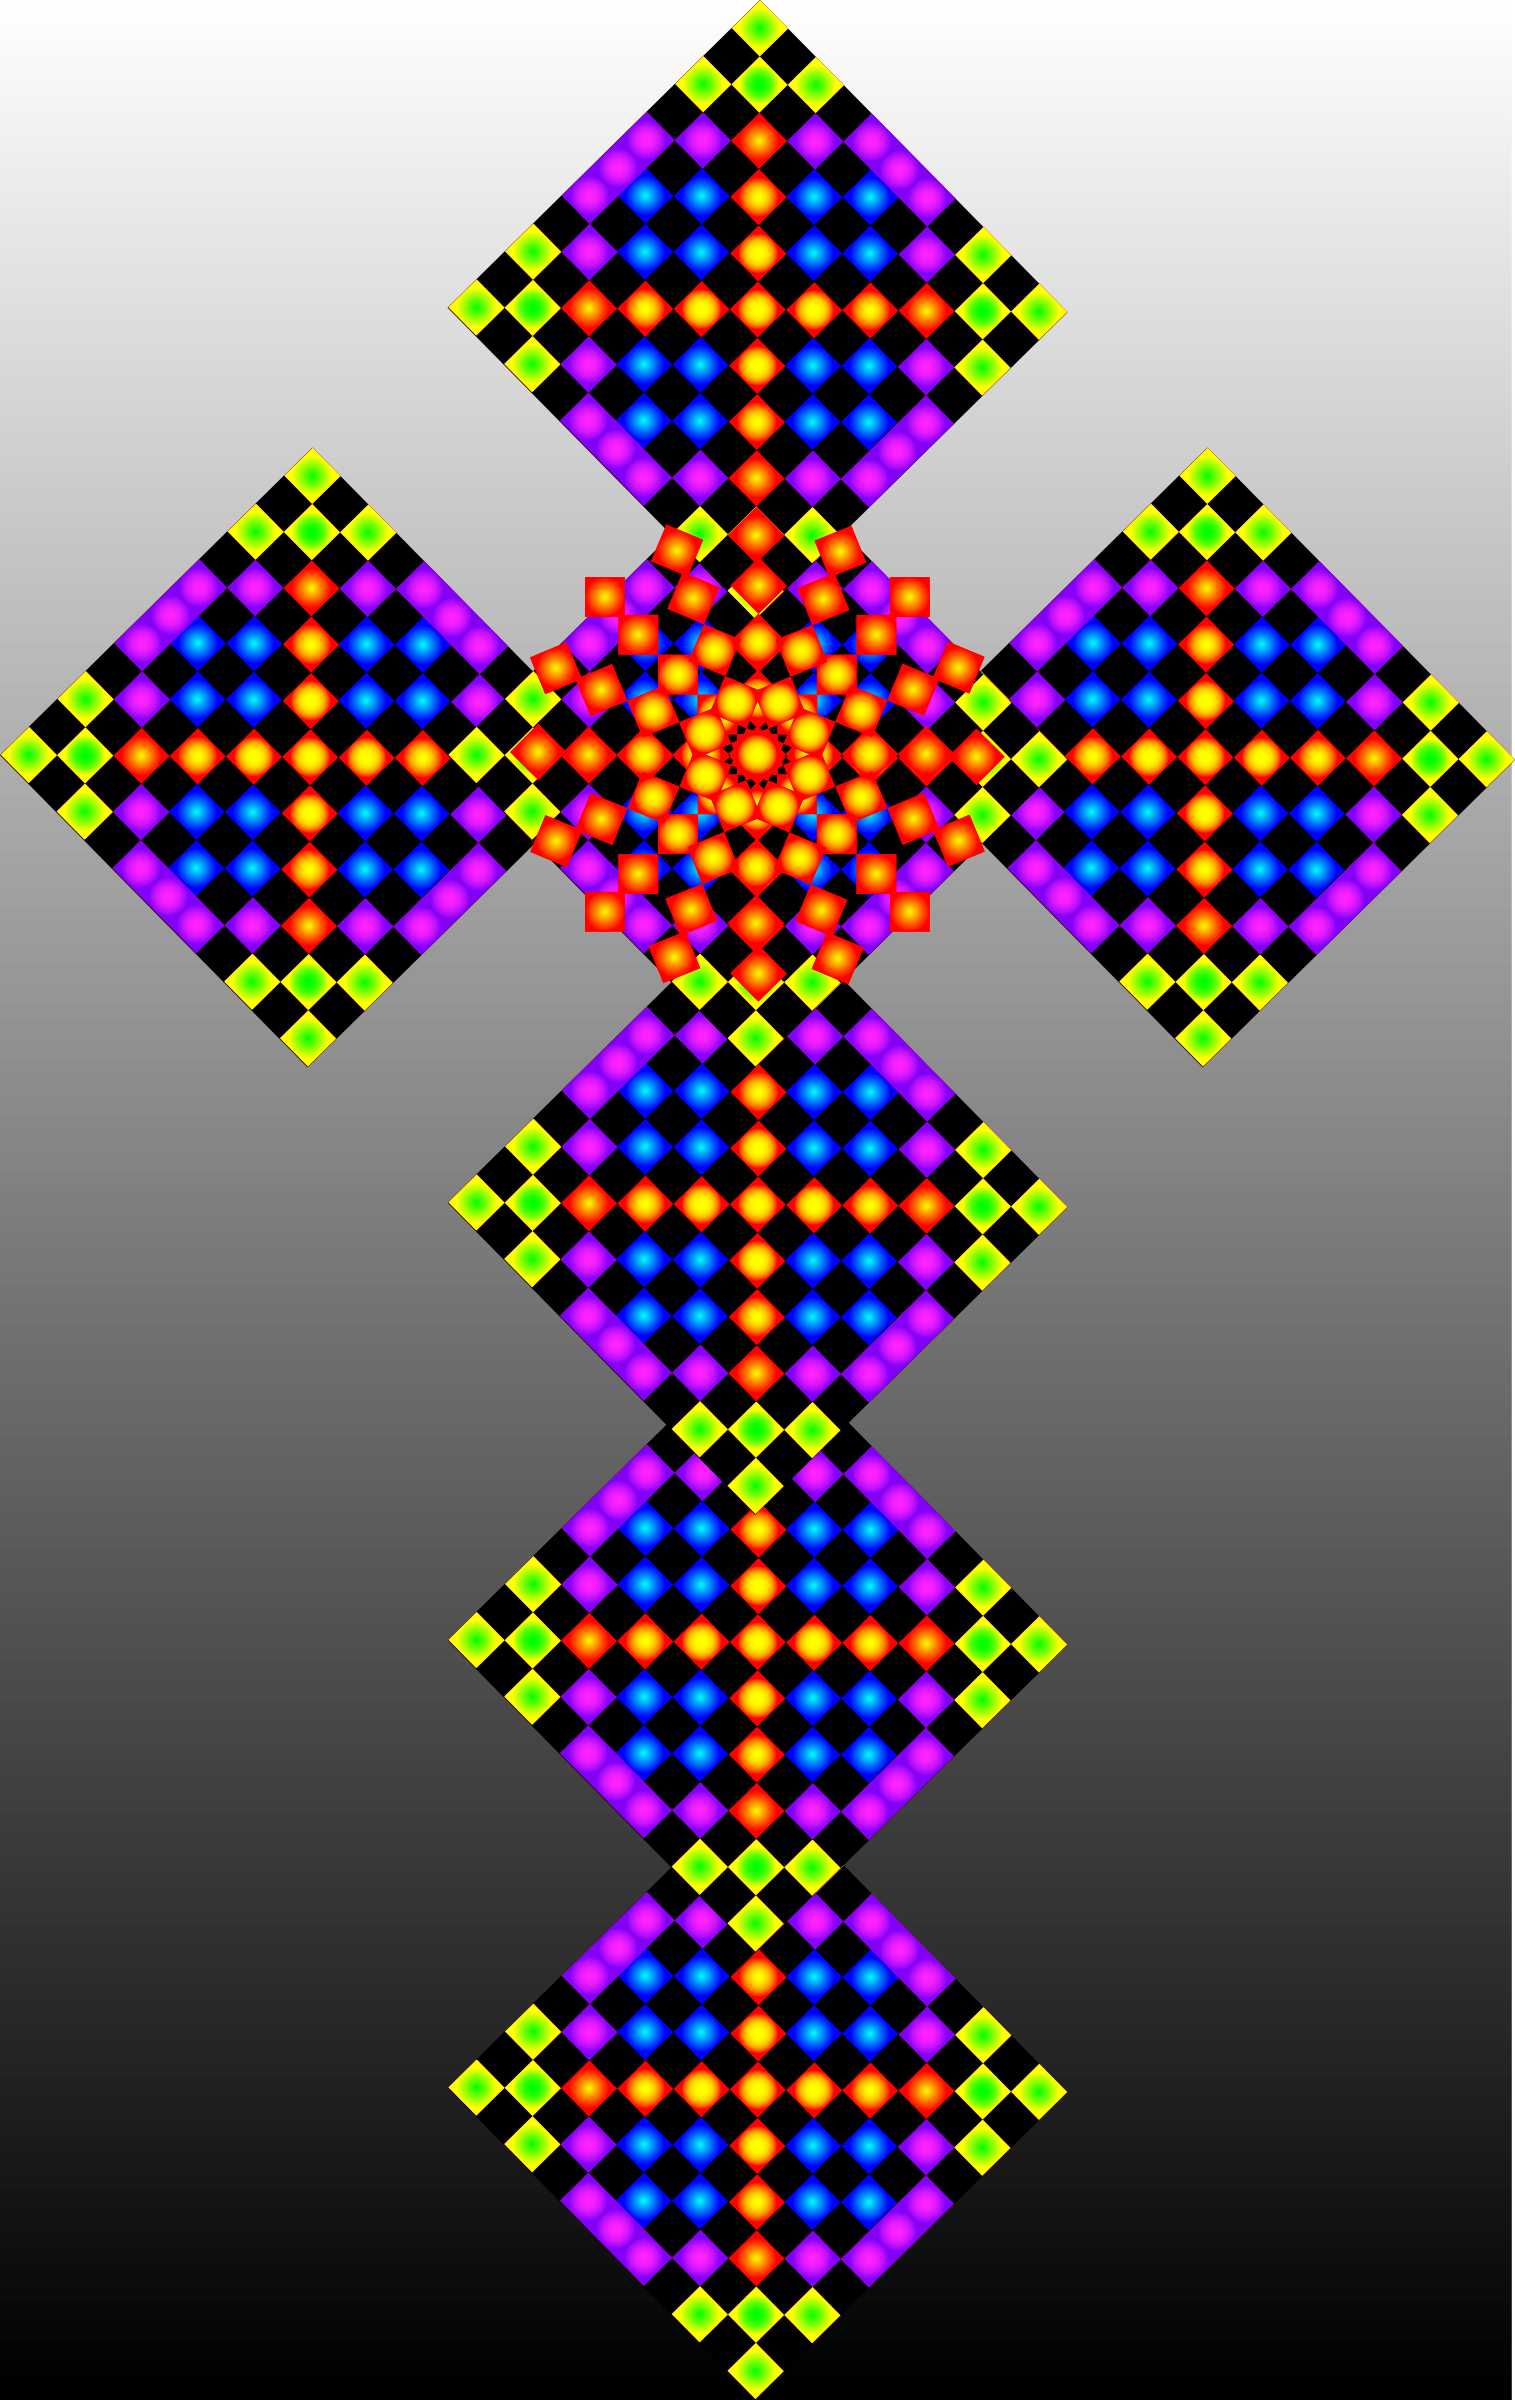 Tile Cross 4  by imdeggman